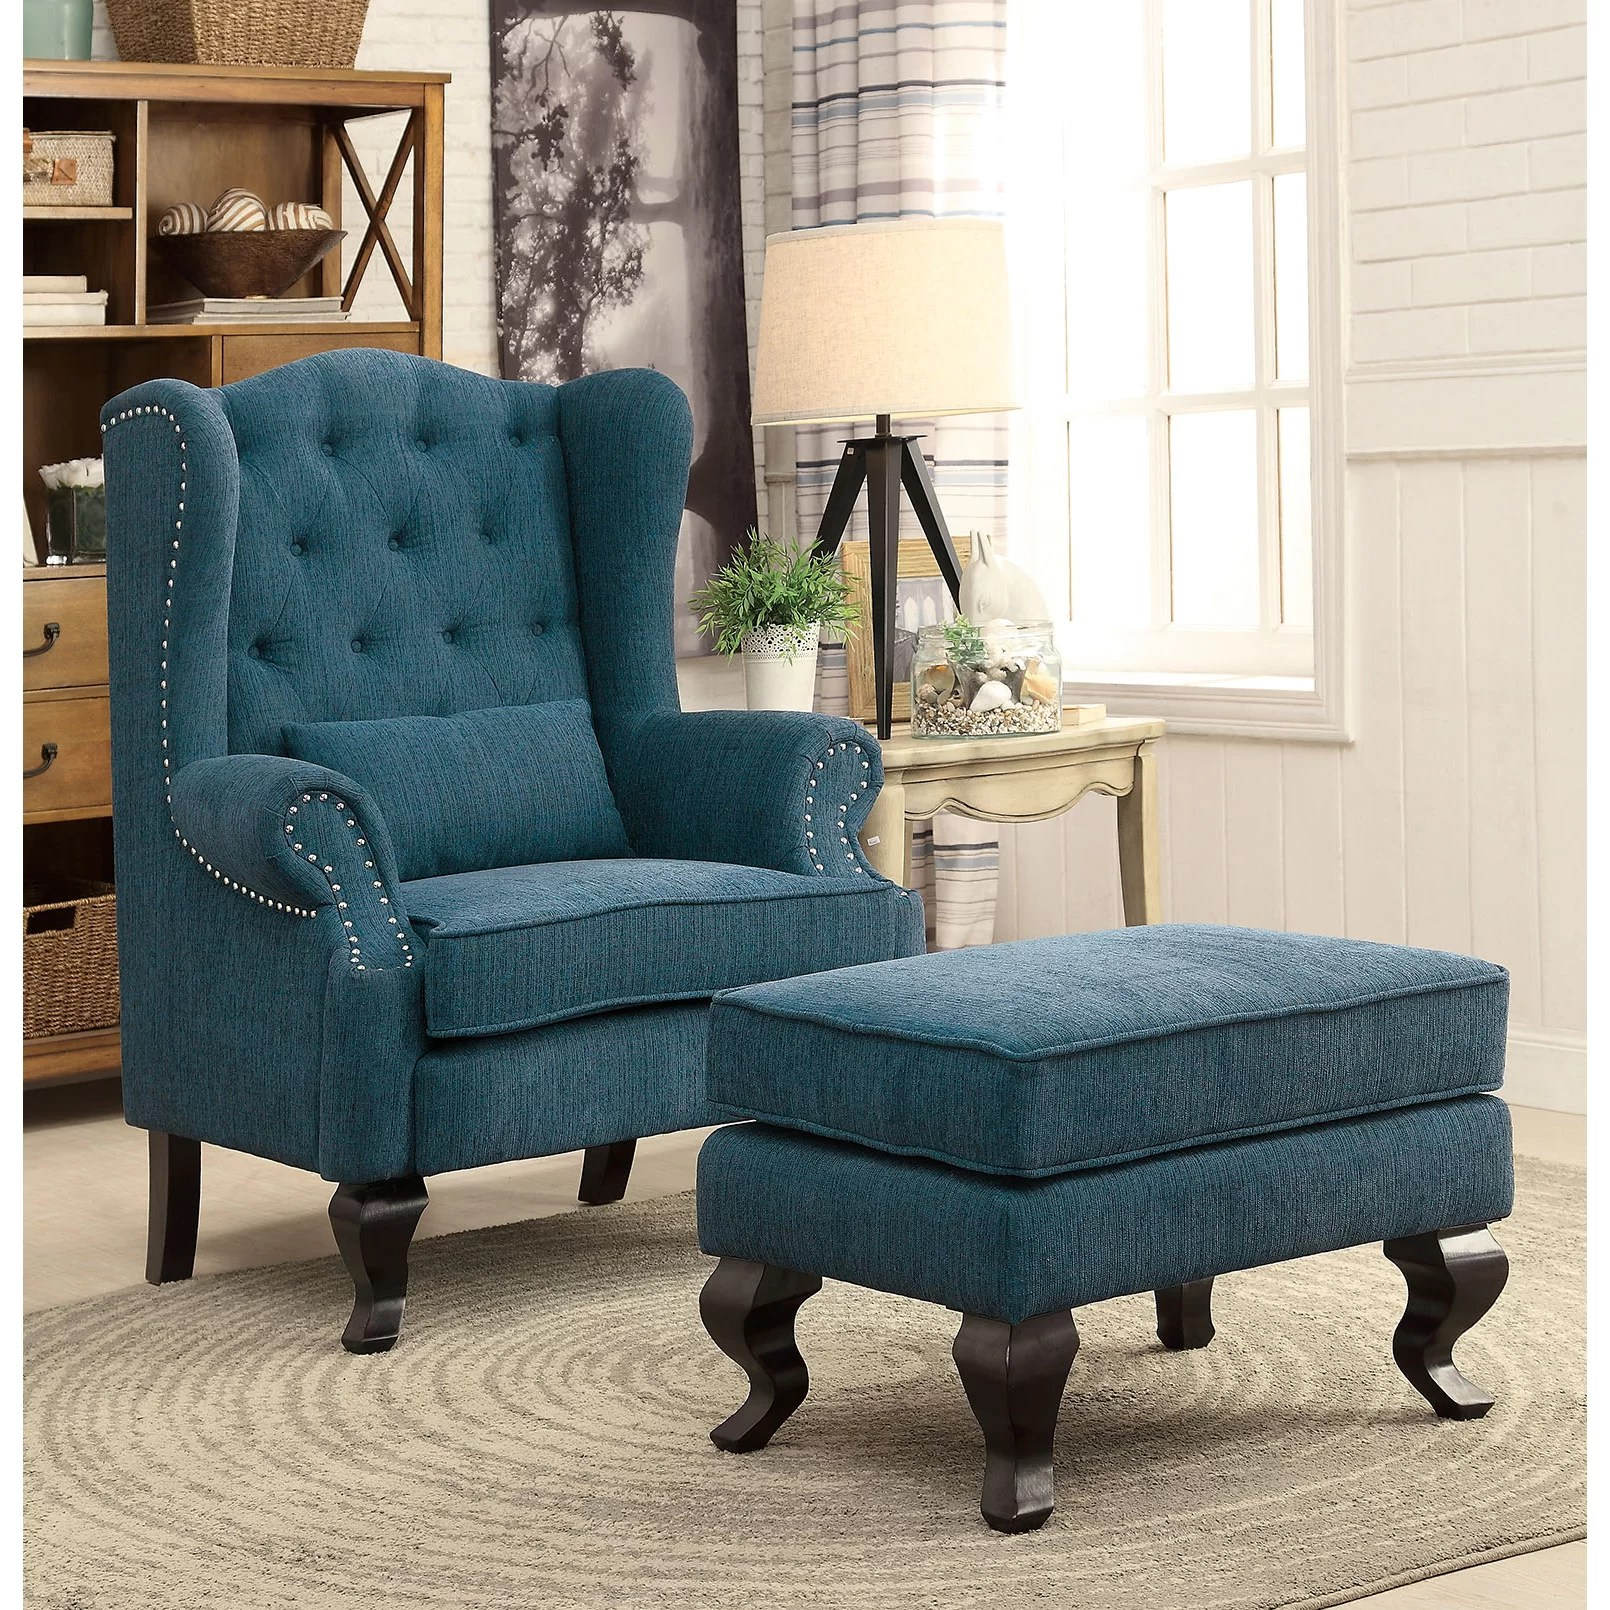 teal wingback chair knoll chadwick drafting enitiallab mareena and reviews wayfair